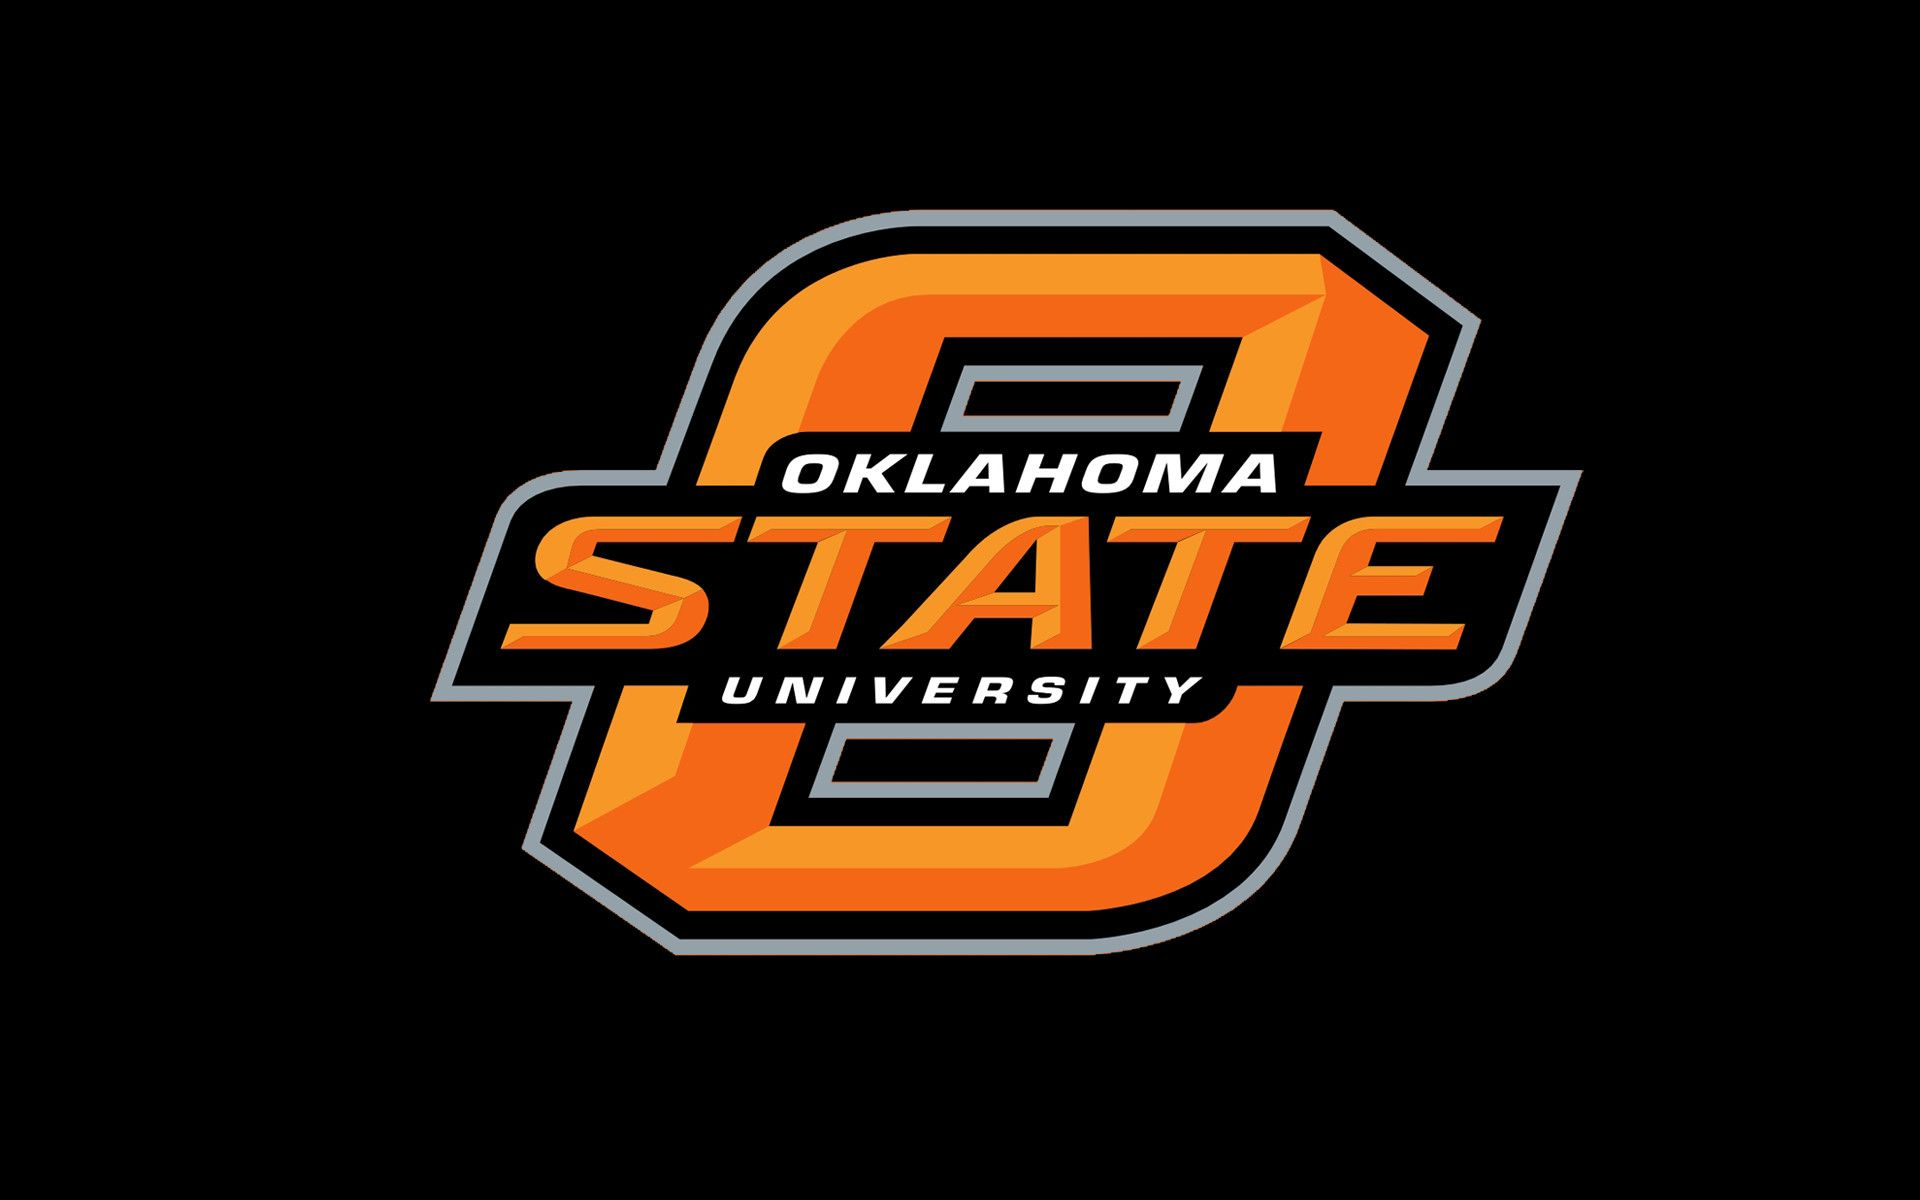 Oklahoma State University Wallpapers